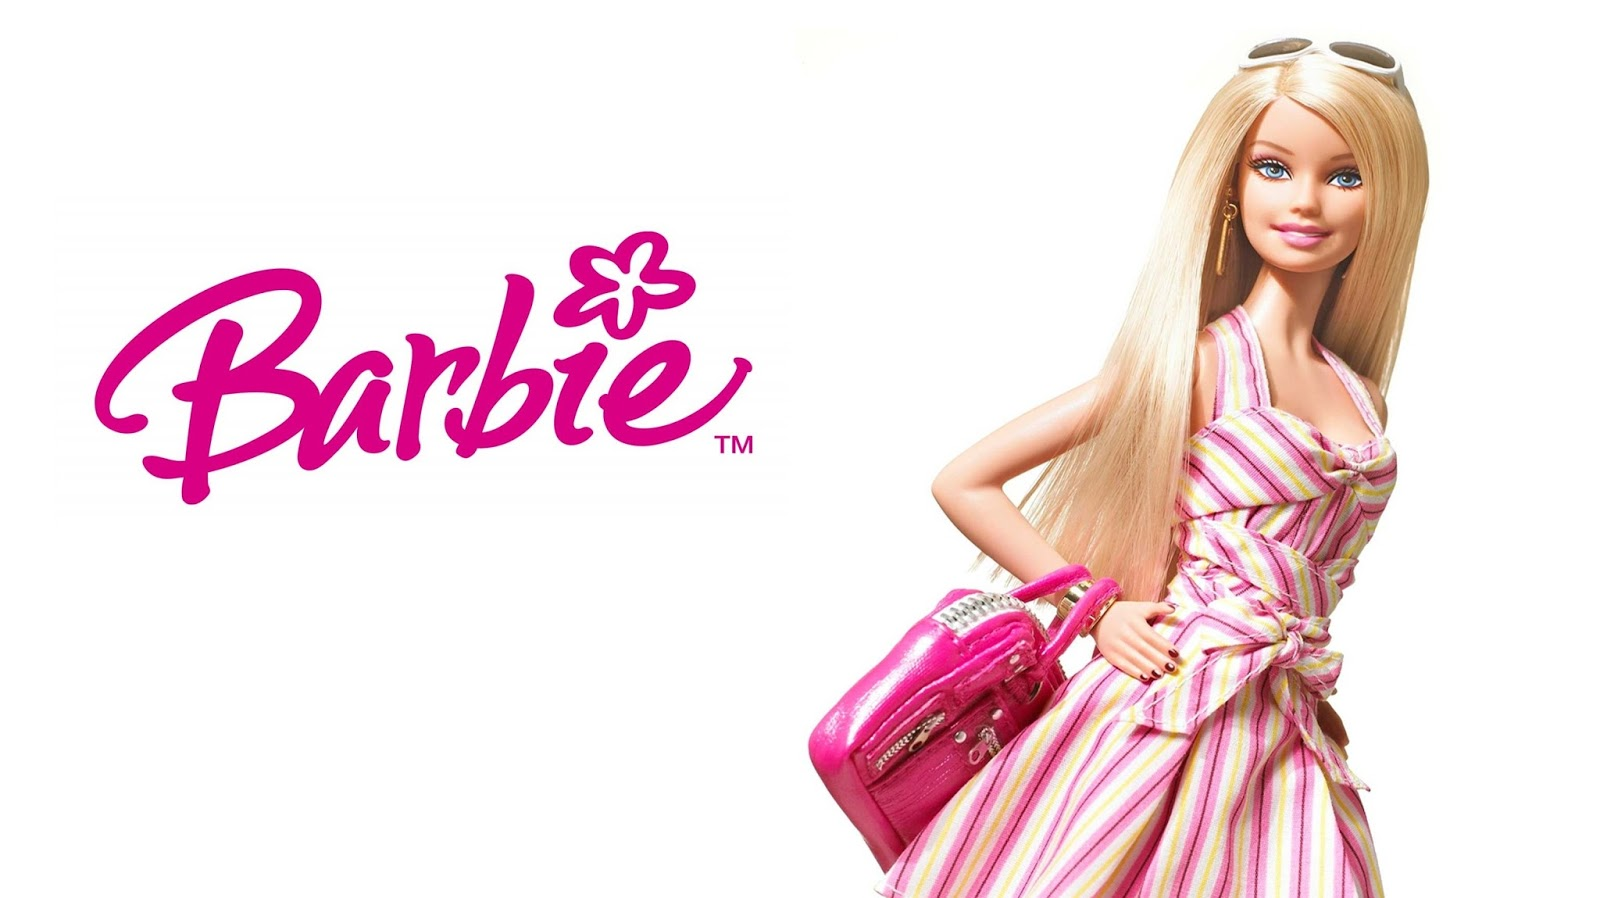 Gorditas, bajitas y de color! La Barbie se transforma para parecerse ...